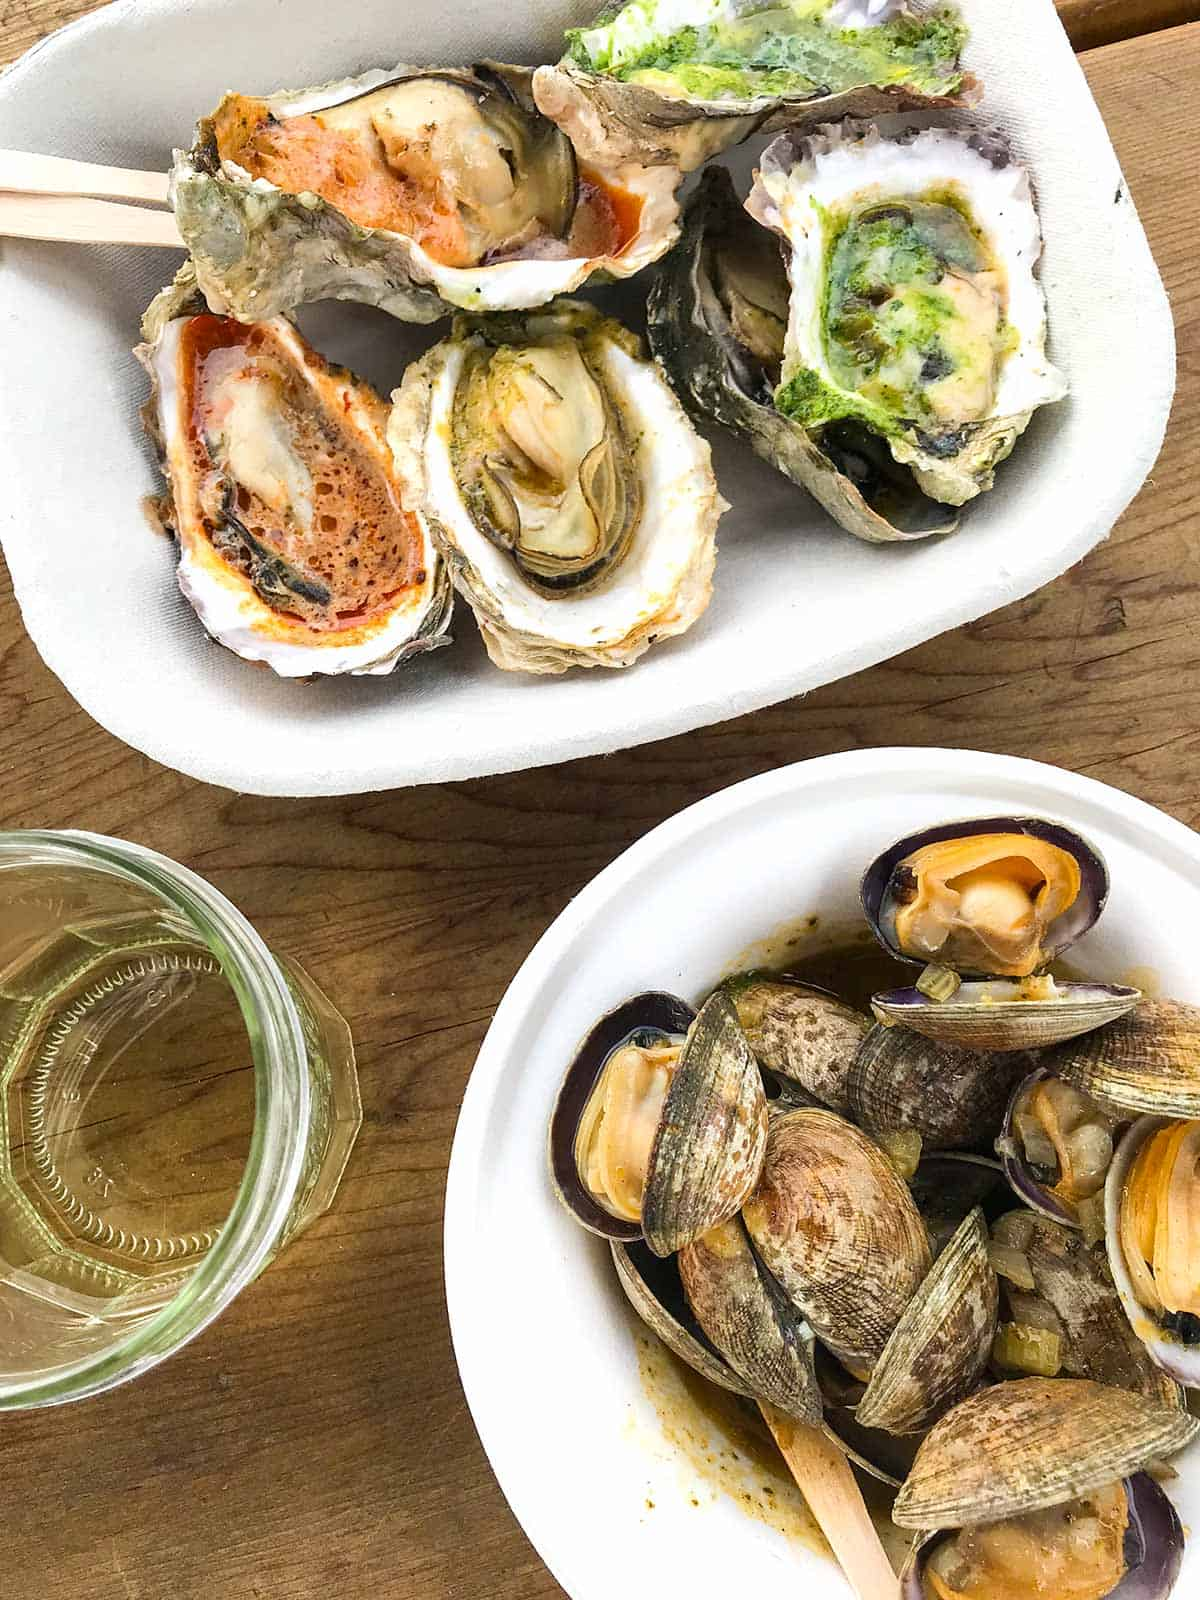 Grilled Oysters and Steamed Clams from Westcott Bay Shelfish